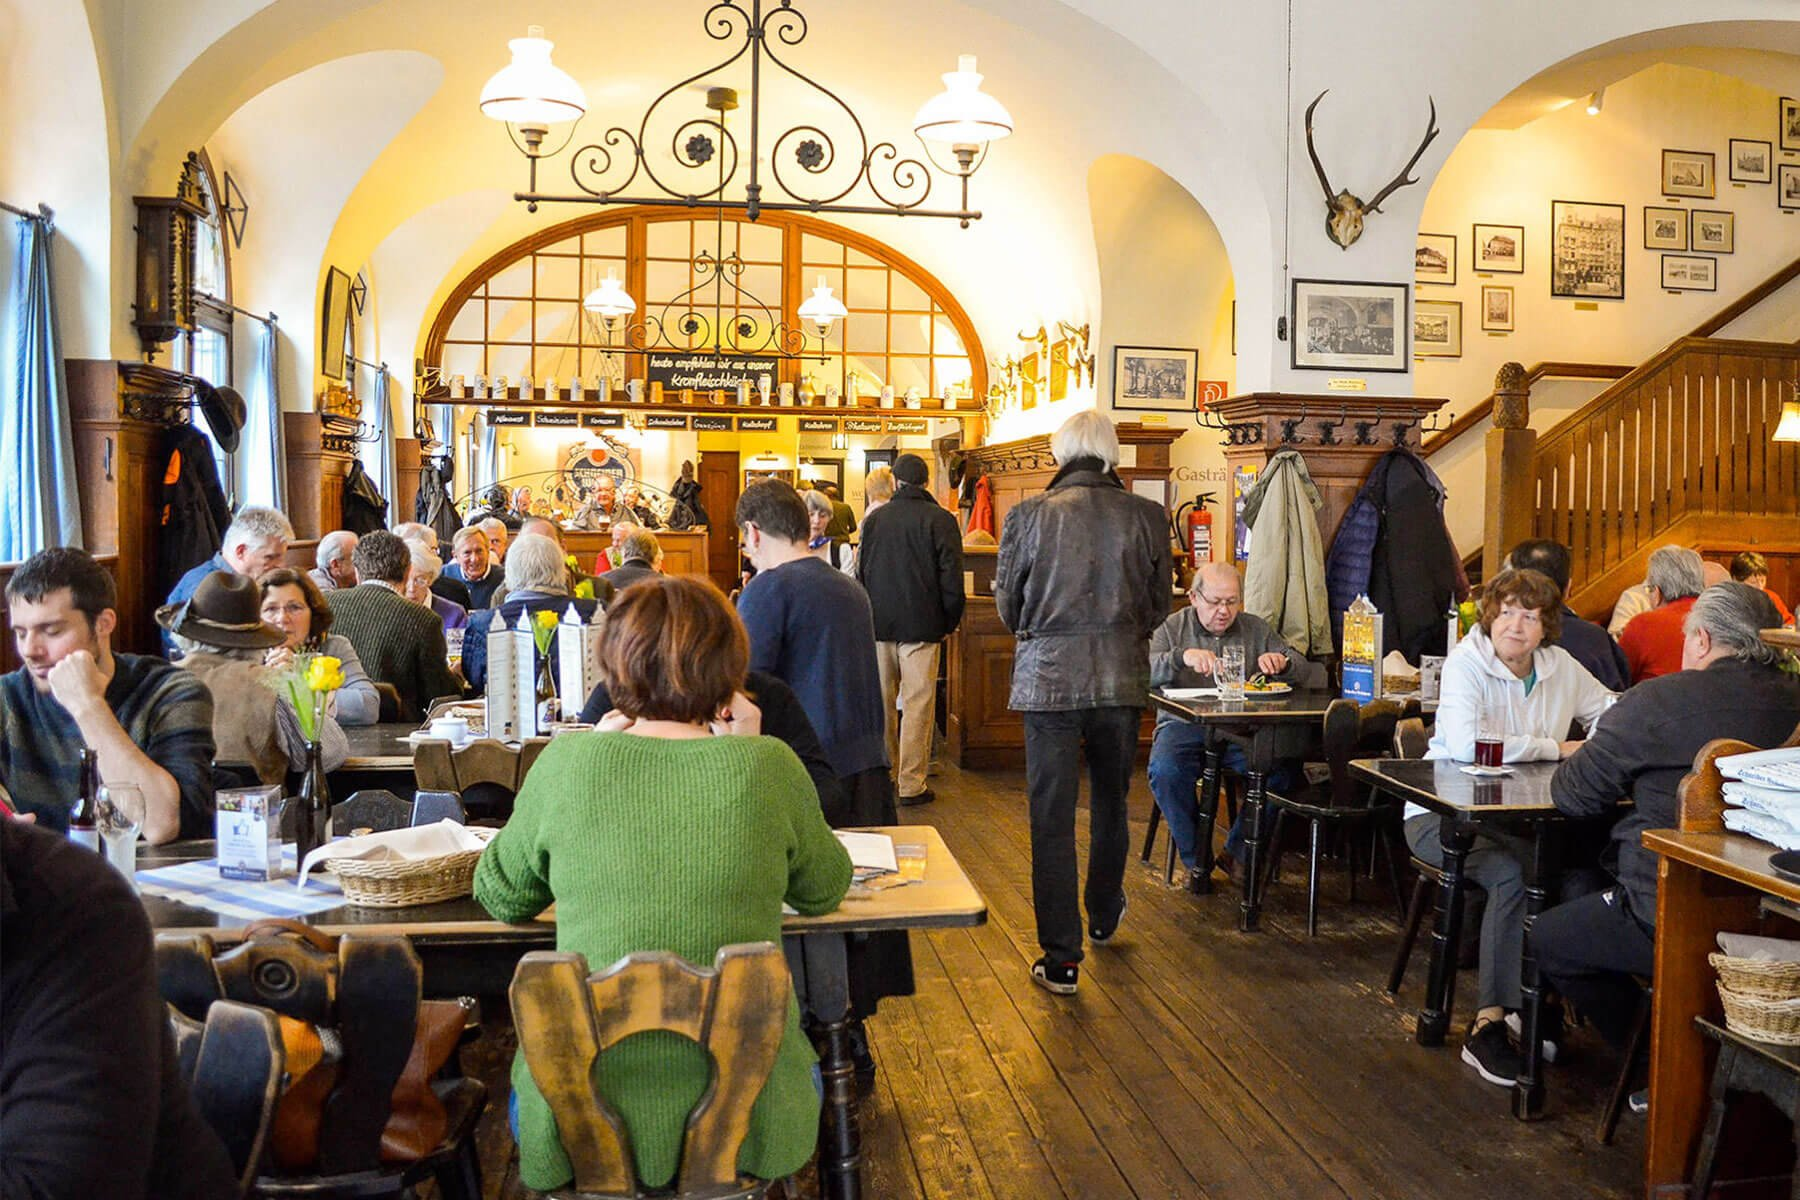 Inside one of the many rooms at the Schneider Bräuhaus in Munich, Germany